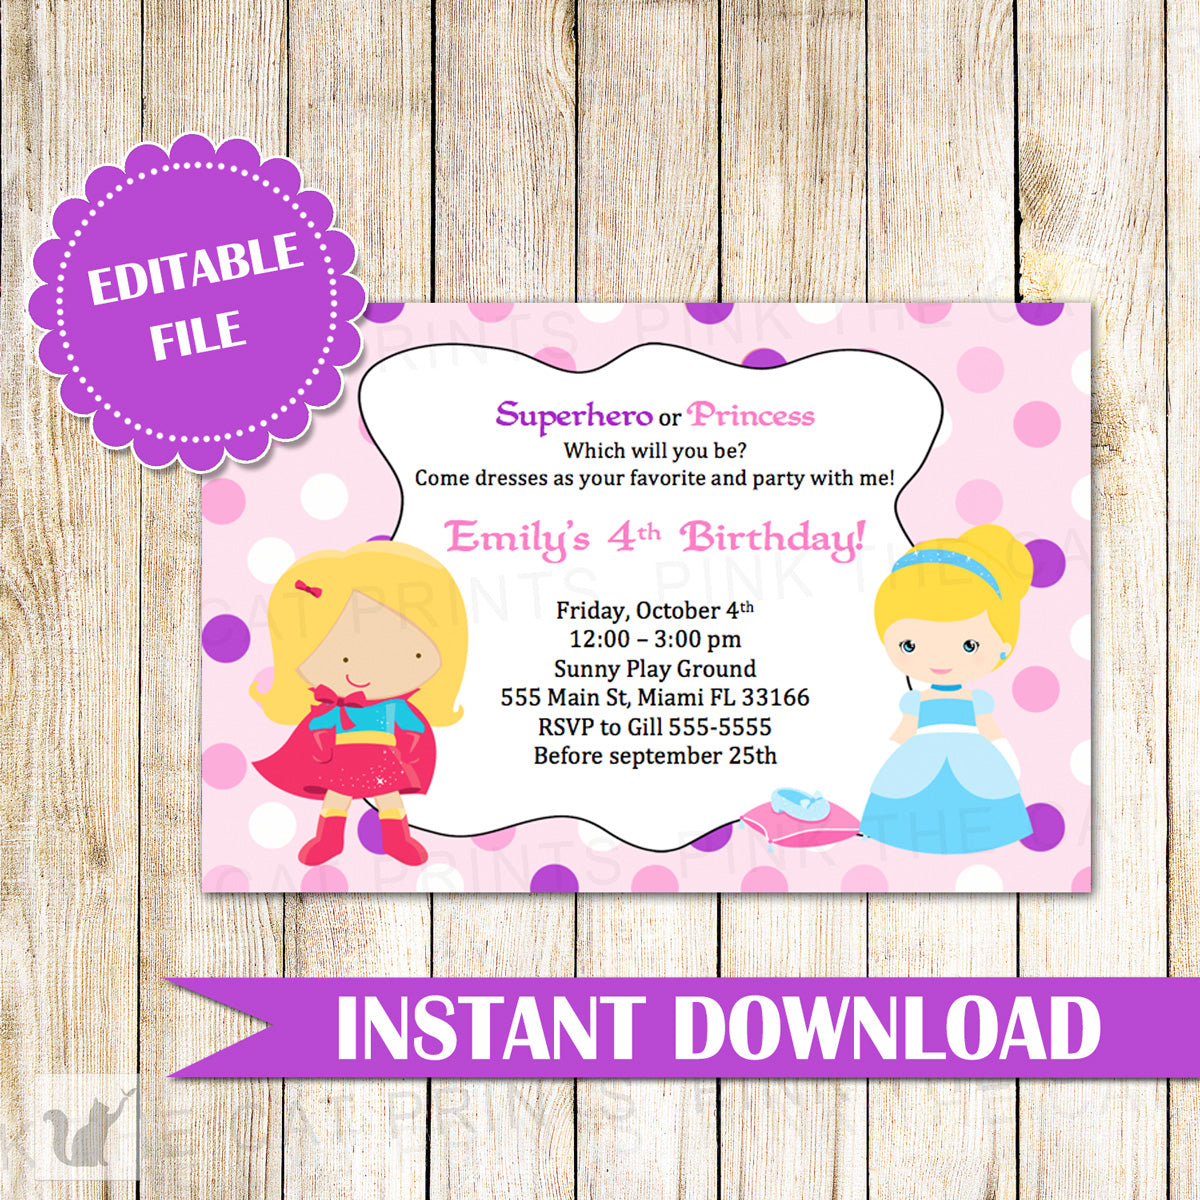 Superhero princess girls invitation birthday party printable superhero girls invitation birthday party printable editable filr filmwisefo